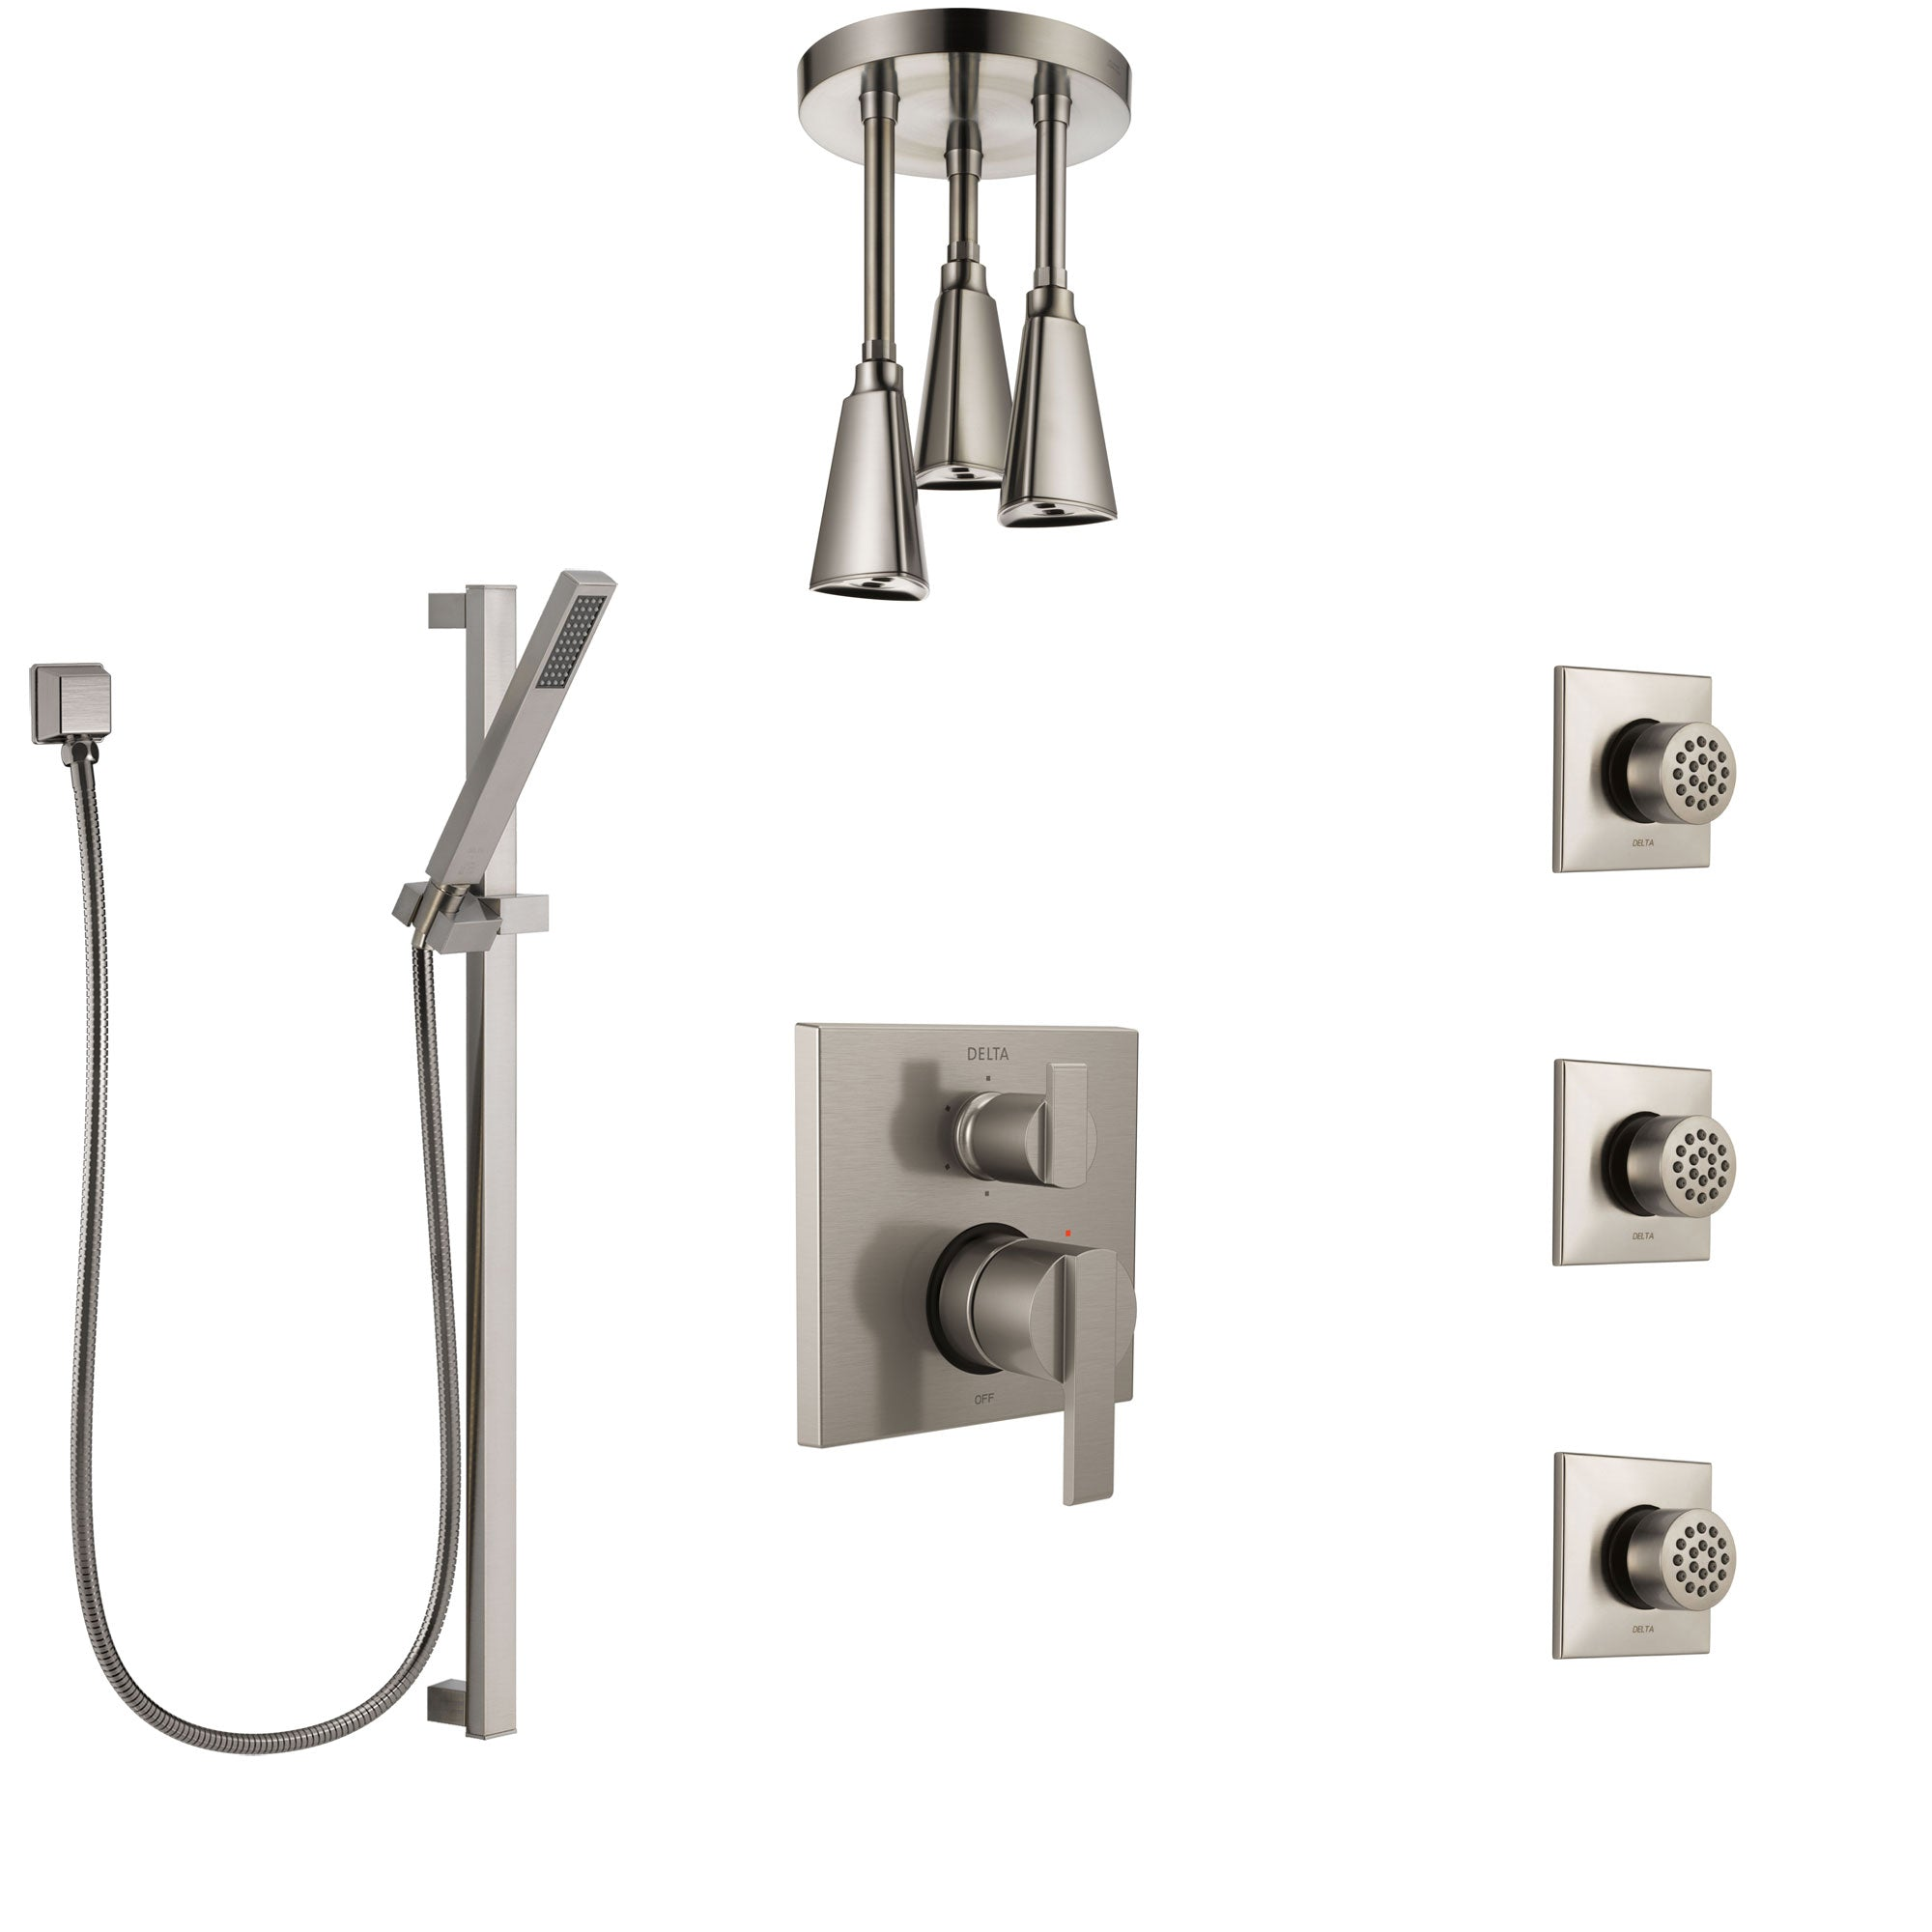 Delta Ara Stainless Steel Finish Shower System with Control Handle, Integrated Diverter, Ceiling Showerhead, 3 Body Sprays, and Hand Shower SS24967SS7